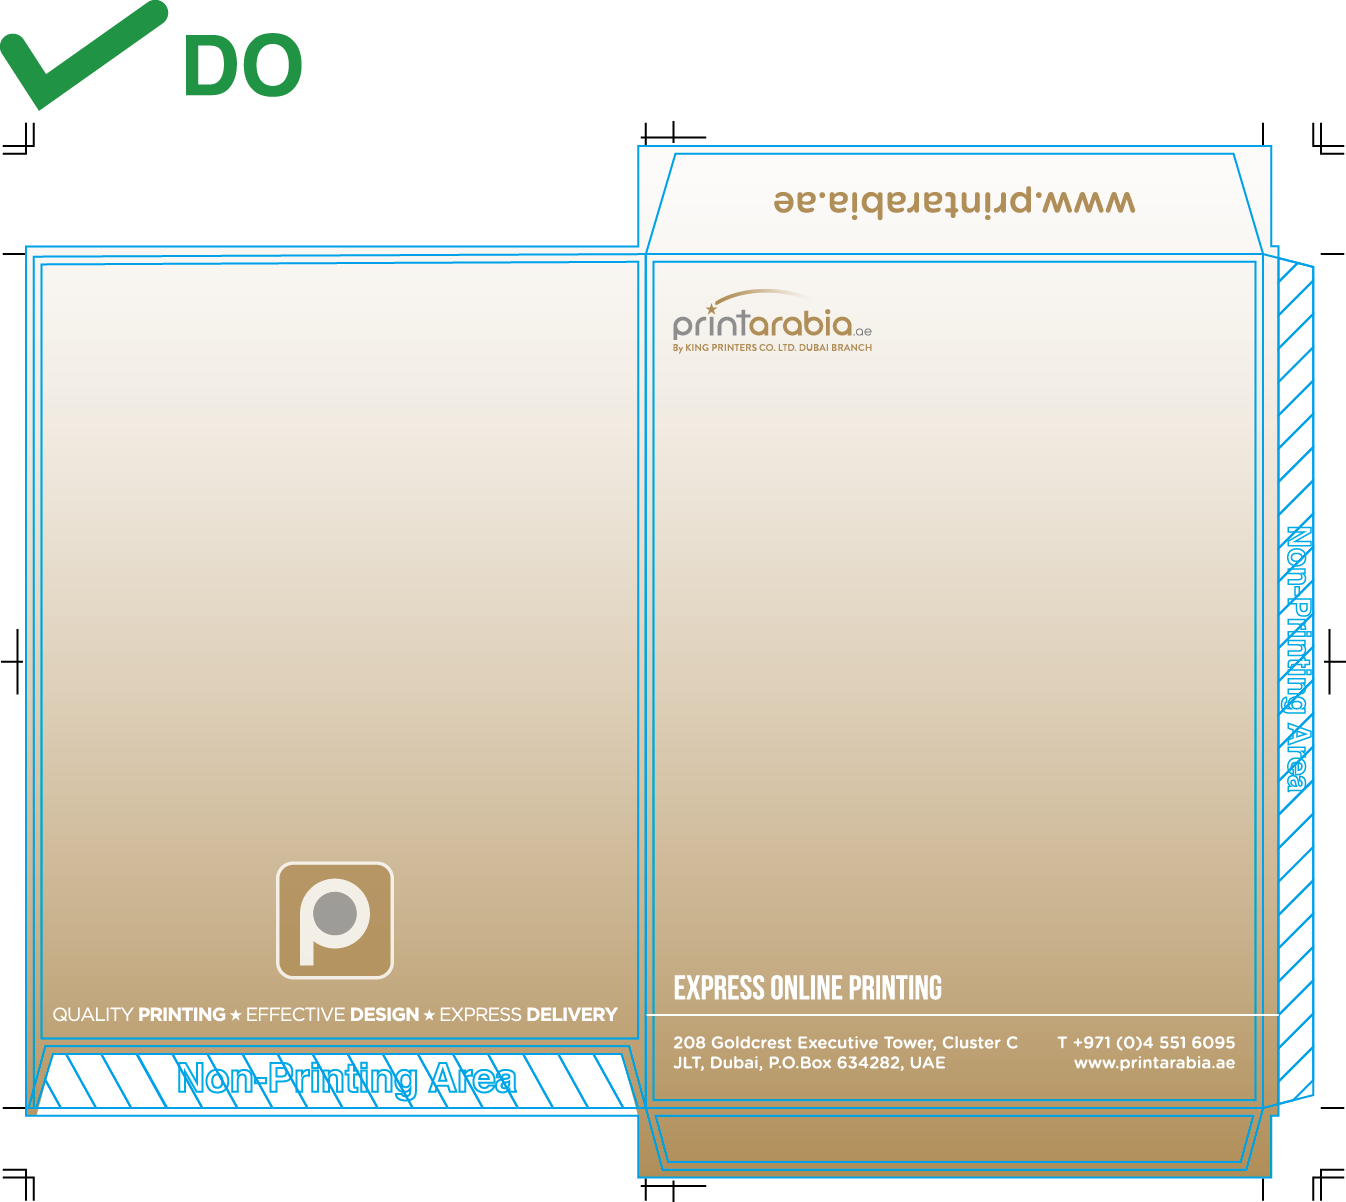 Custom Envelopes - Do's and Don'ts when laying out your design 04 Image